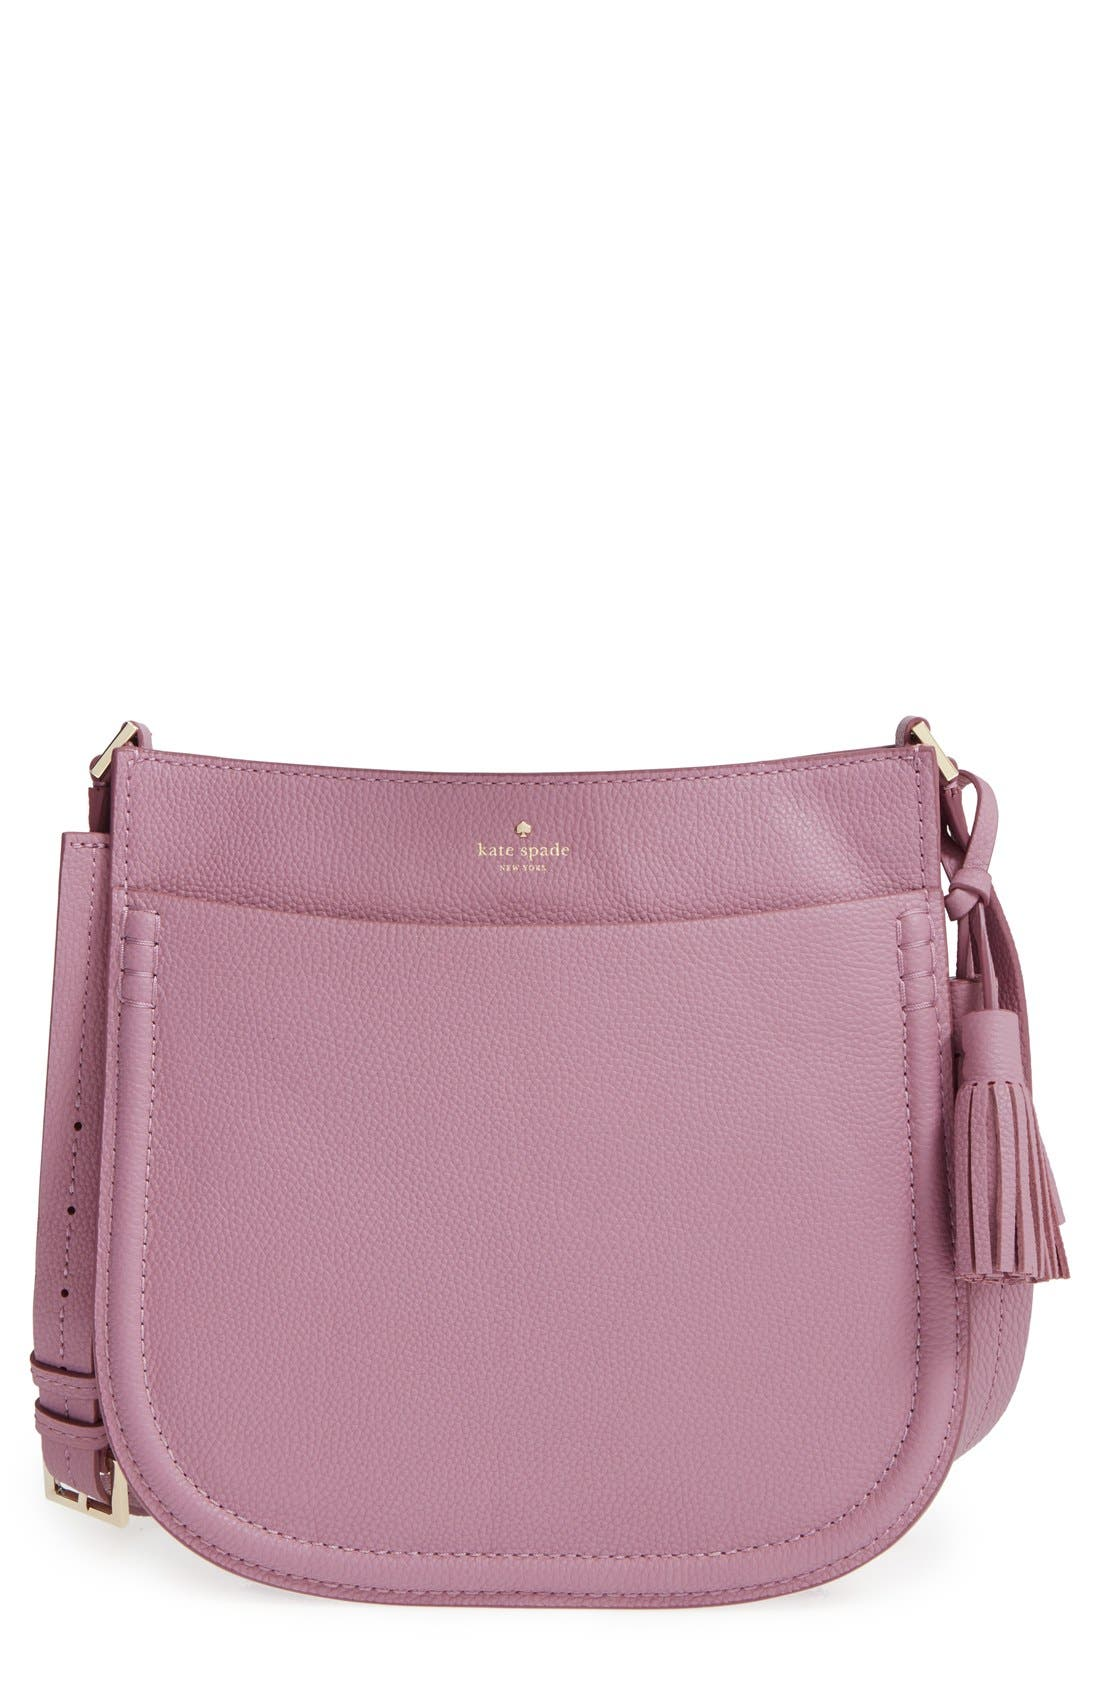 Alternate Image 1 Selected - kate spade new york 'orchard street - hemsley' leather shoulder bag